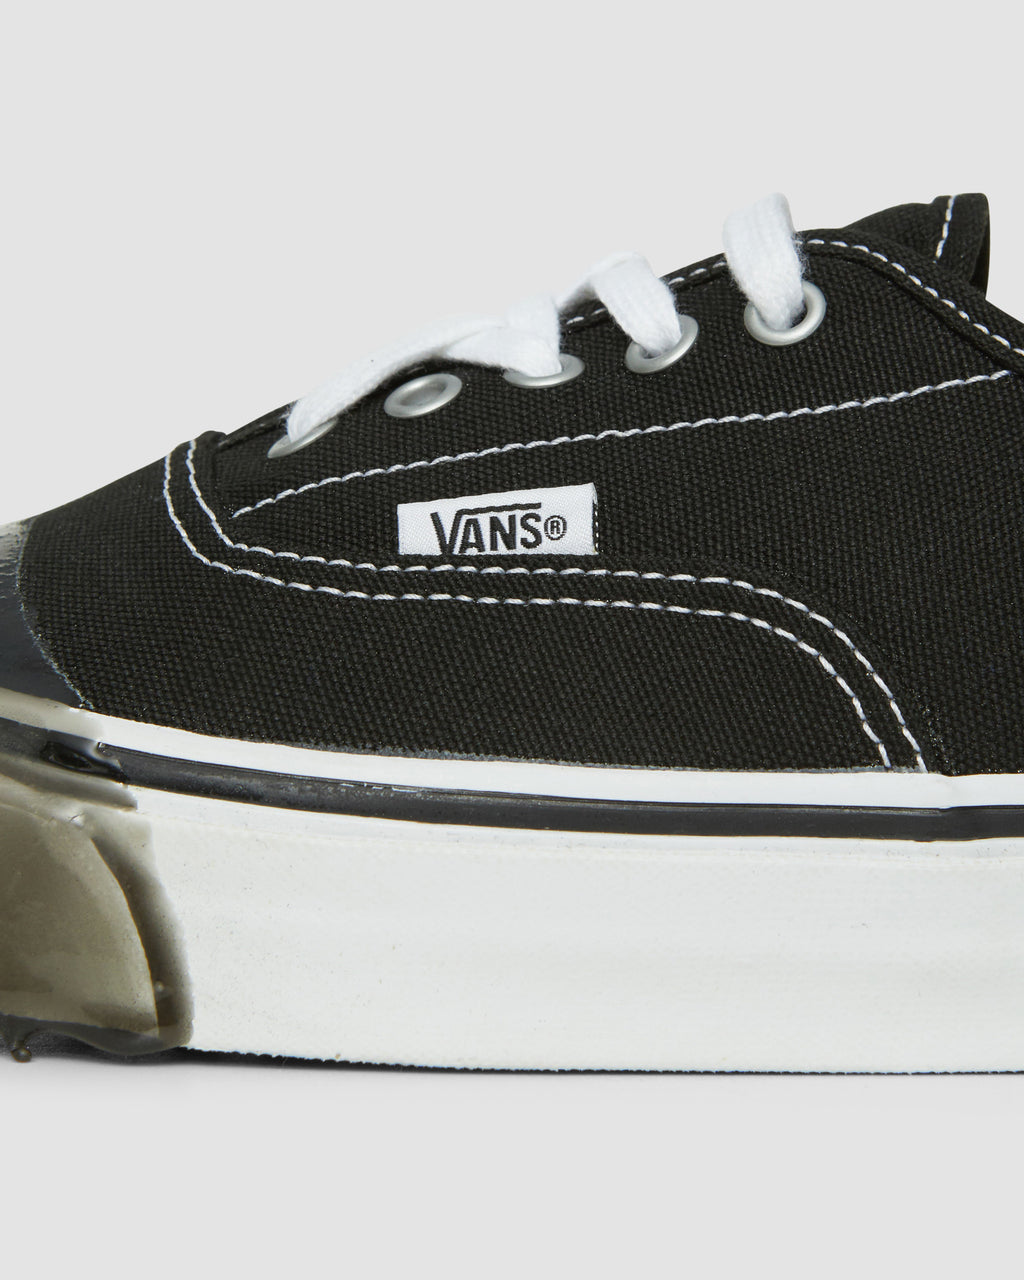 VANS OG STYLE 43 AUTHENTIC TREAT